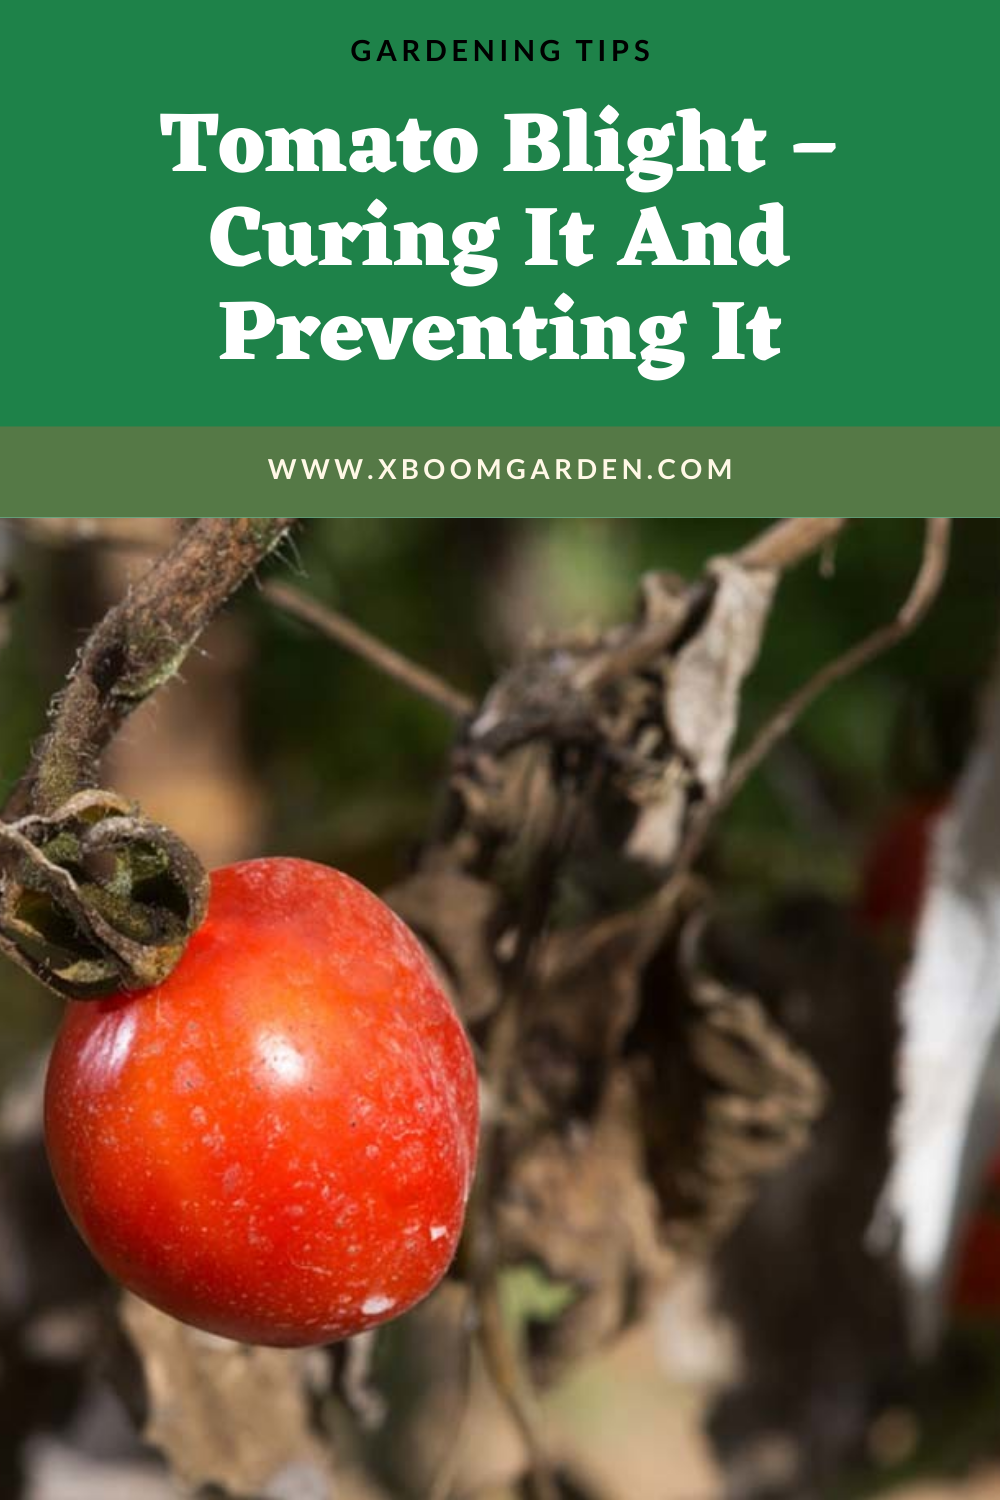 79740a8b8ca188dfd42a4c09b034c950 - How To Get Rid Of Late Blight On Tomatoes